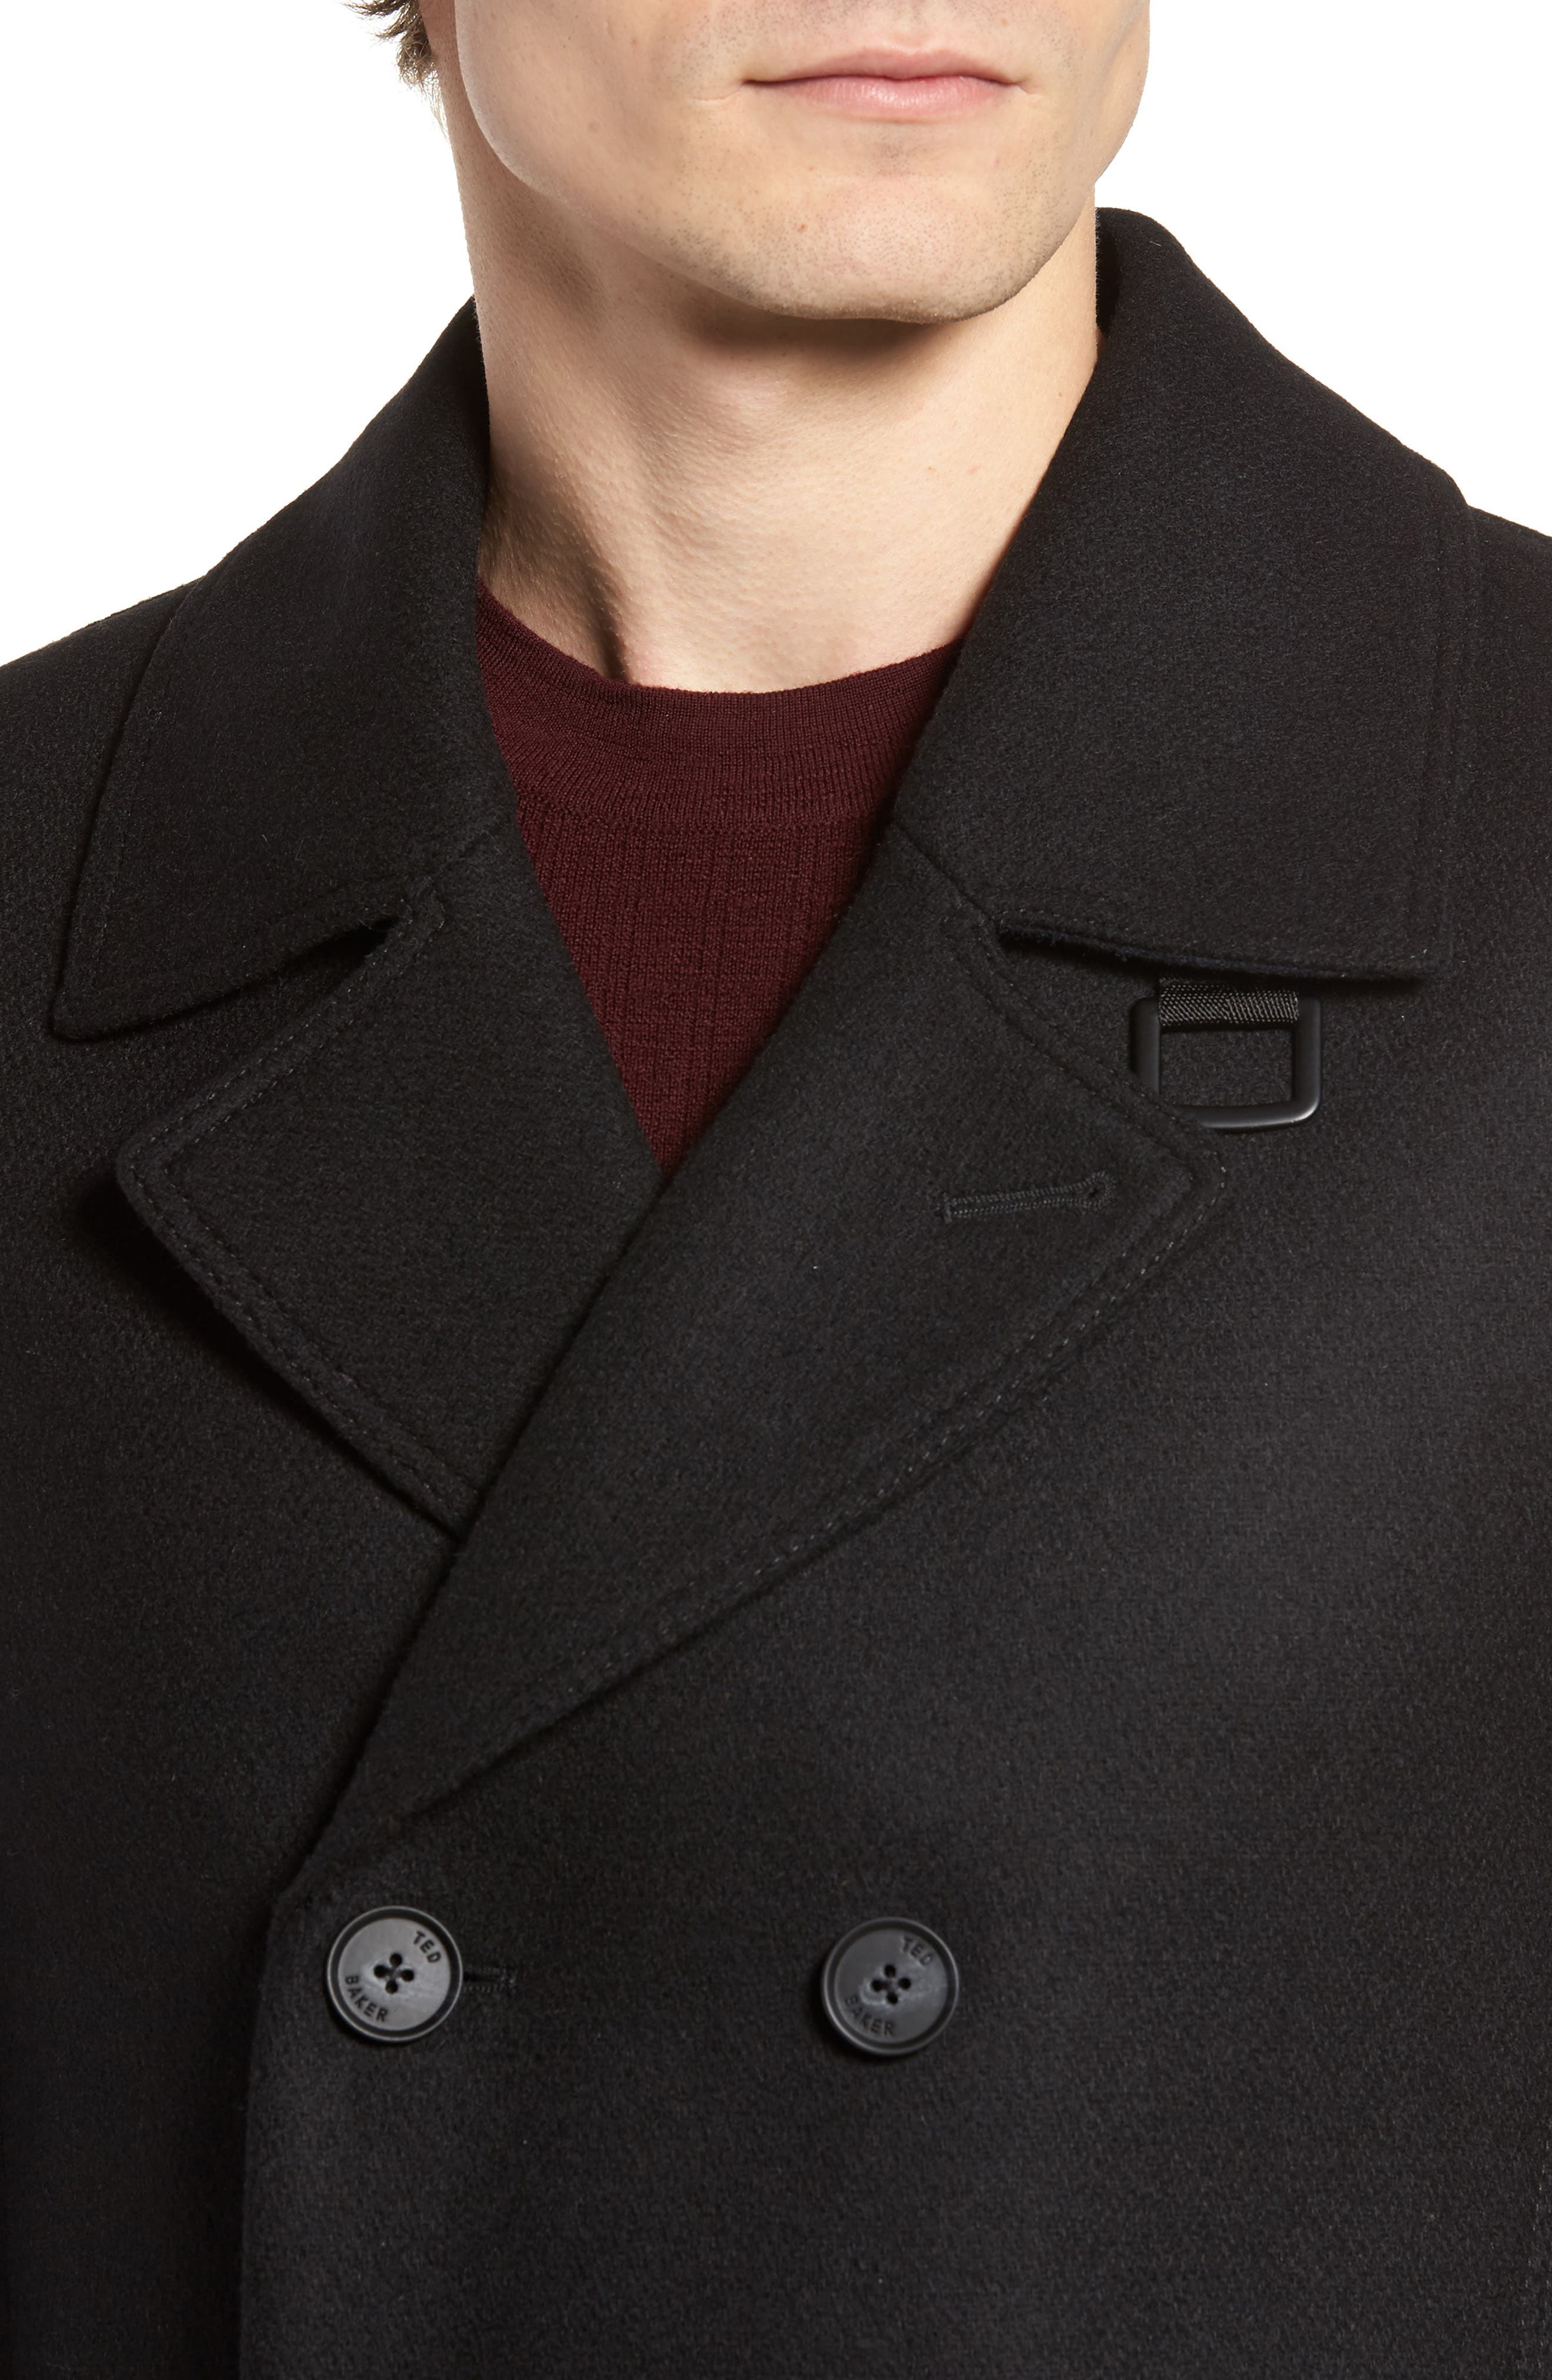 Zachary Trim Fit Double Breasted Peacoat,                             Alternate thumbnail 4, color,                             001